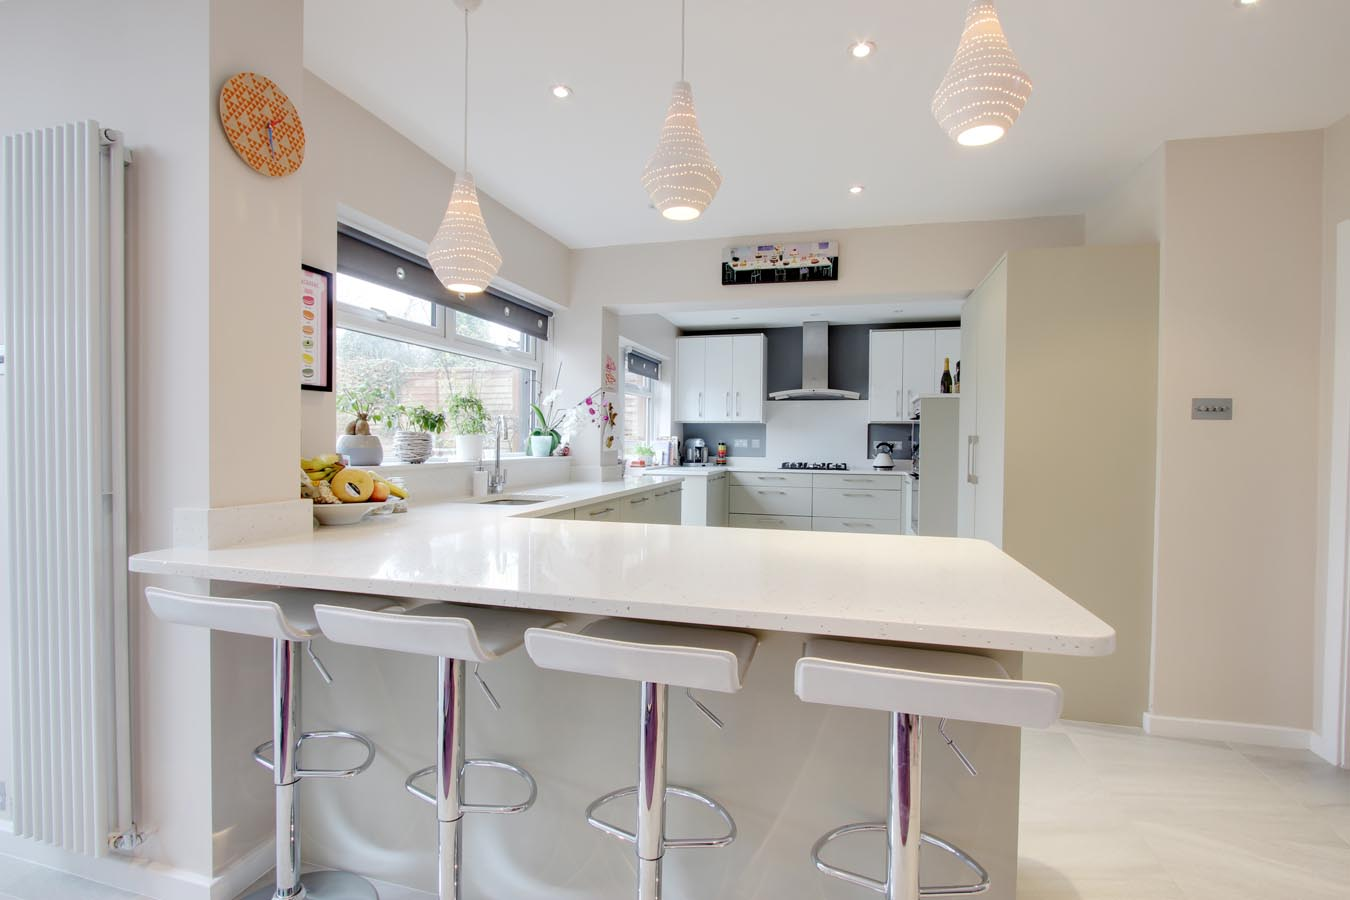 designer kitchens potters bar potters bar hertfordshire reform design 6650